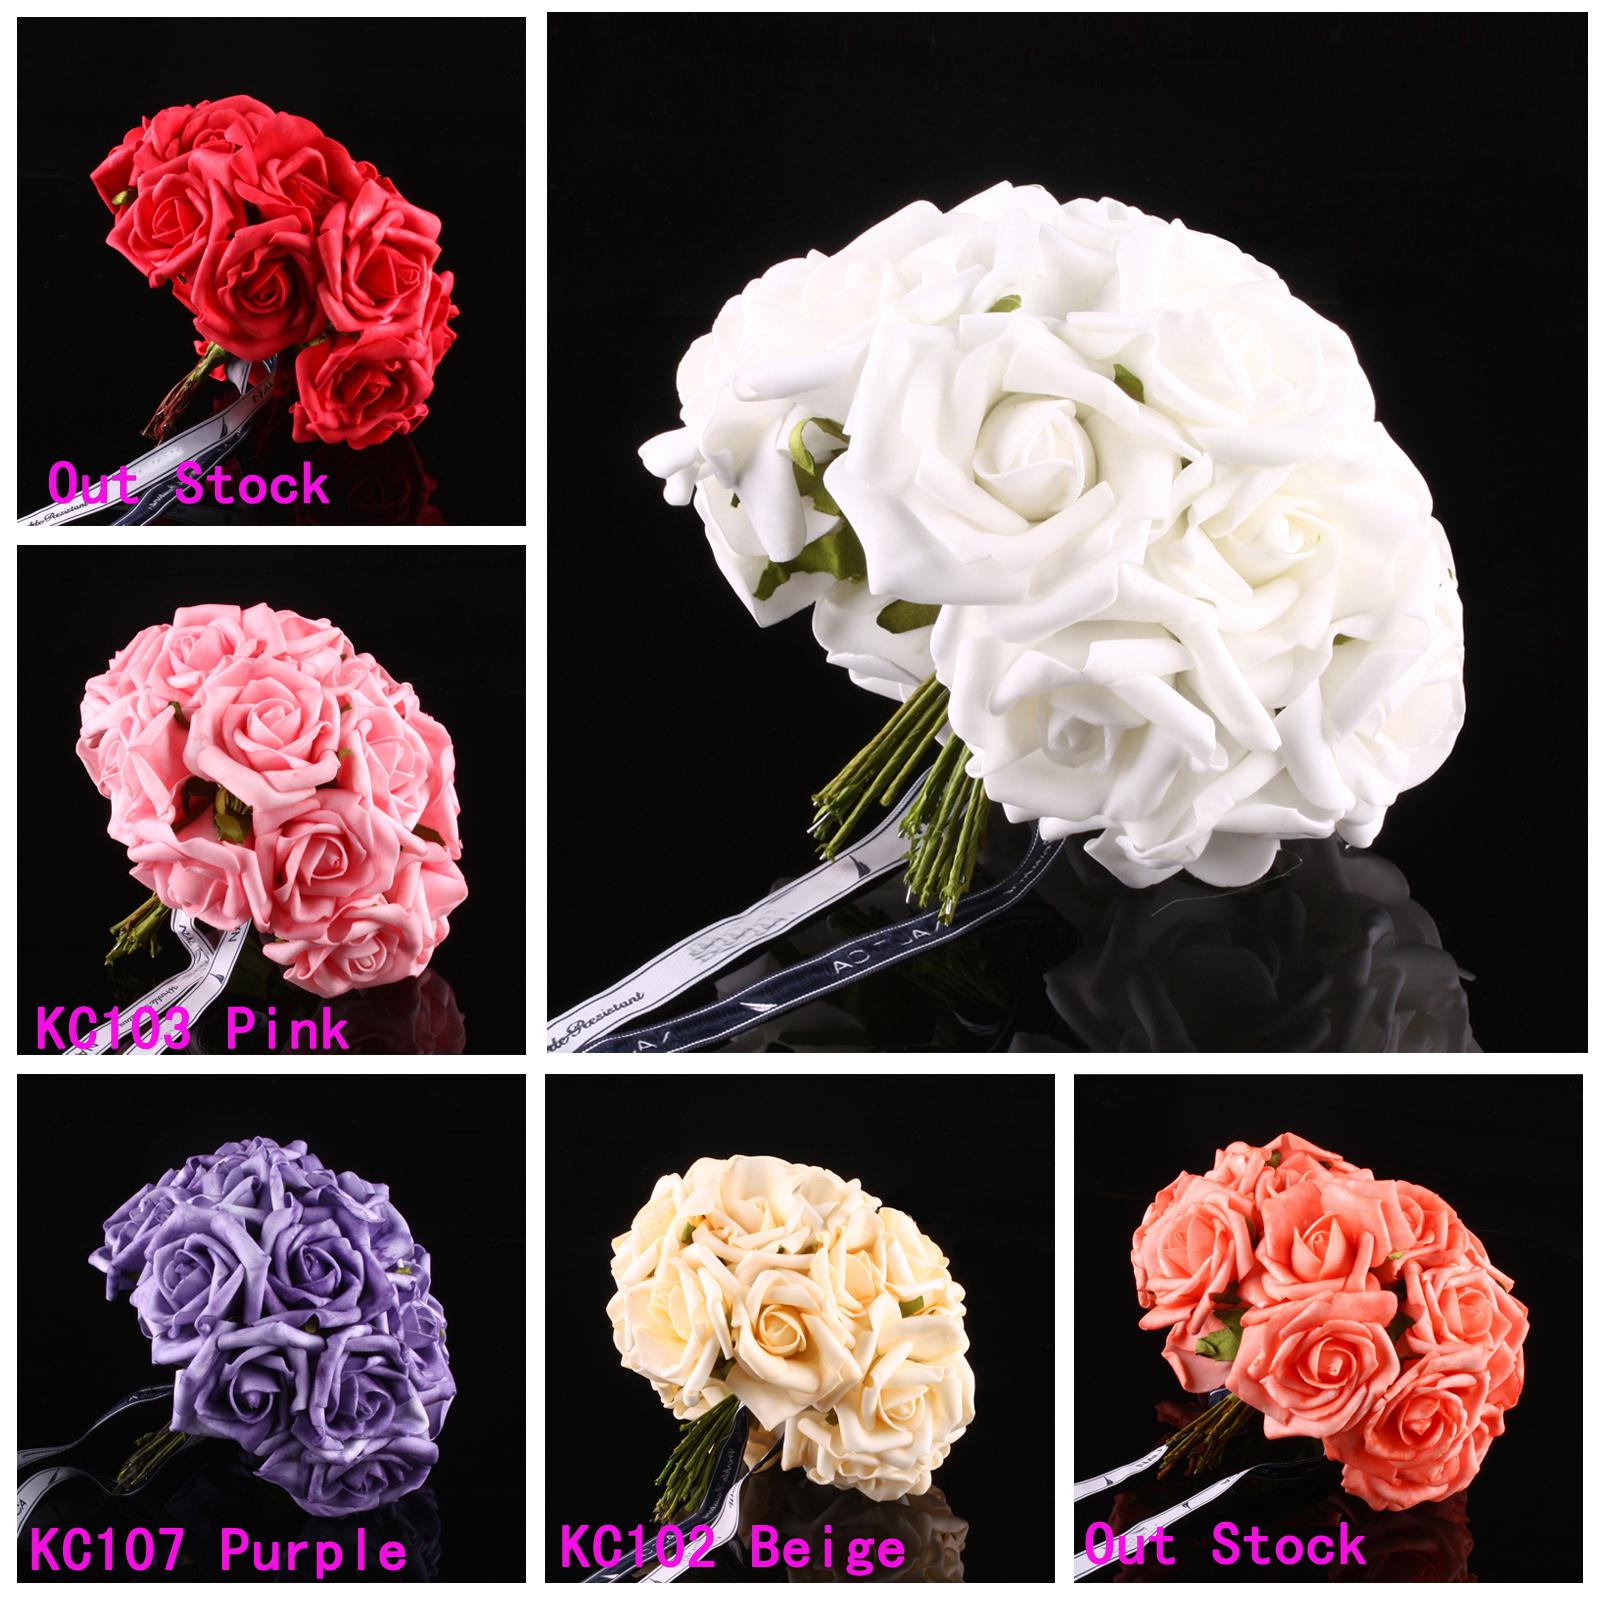 Rose bridal wedding latex real touch flowers bouquets diy charm rose bridal wedding latex real touch flowers bouquets diy charm dried flower arrangements fake flower arrangements from etongwolf 170 dhgate izmirmasajfo Image collections